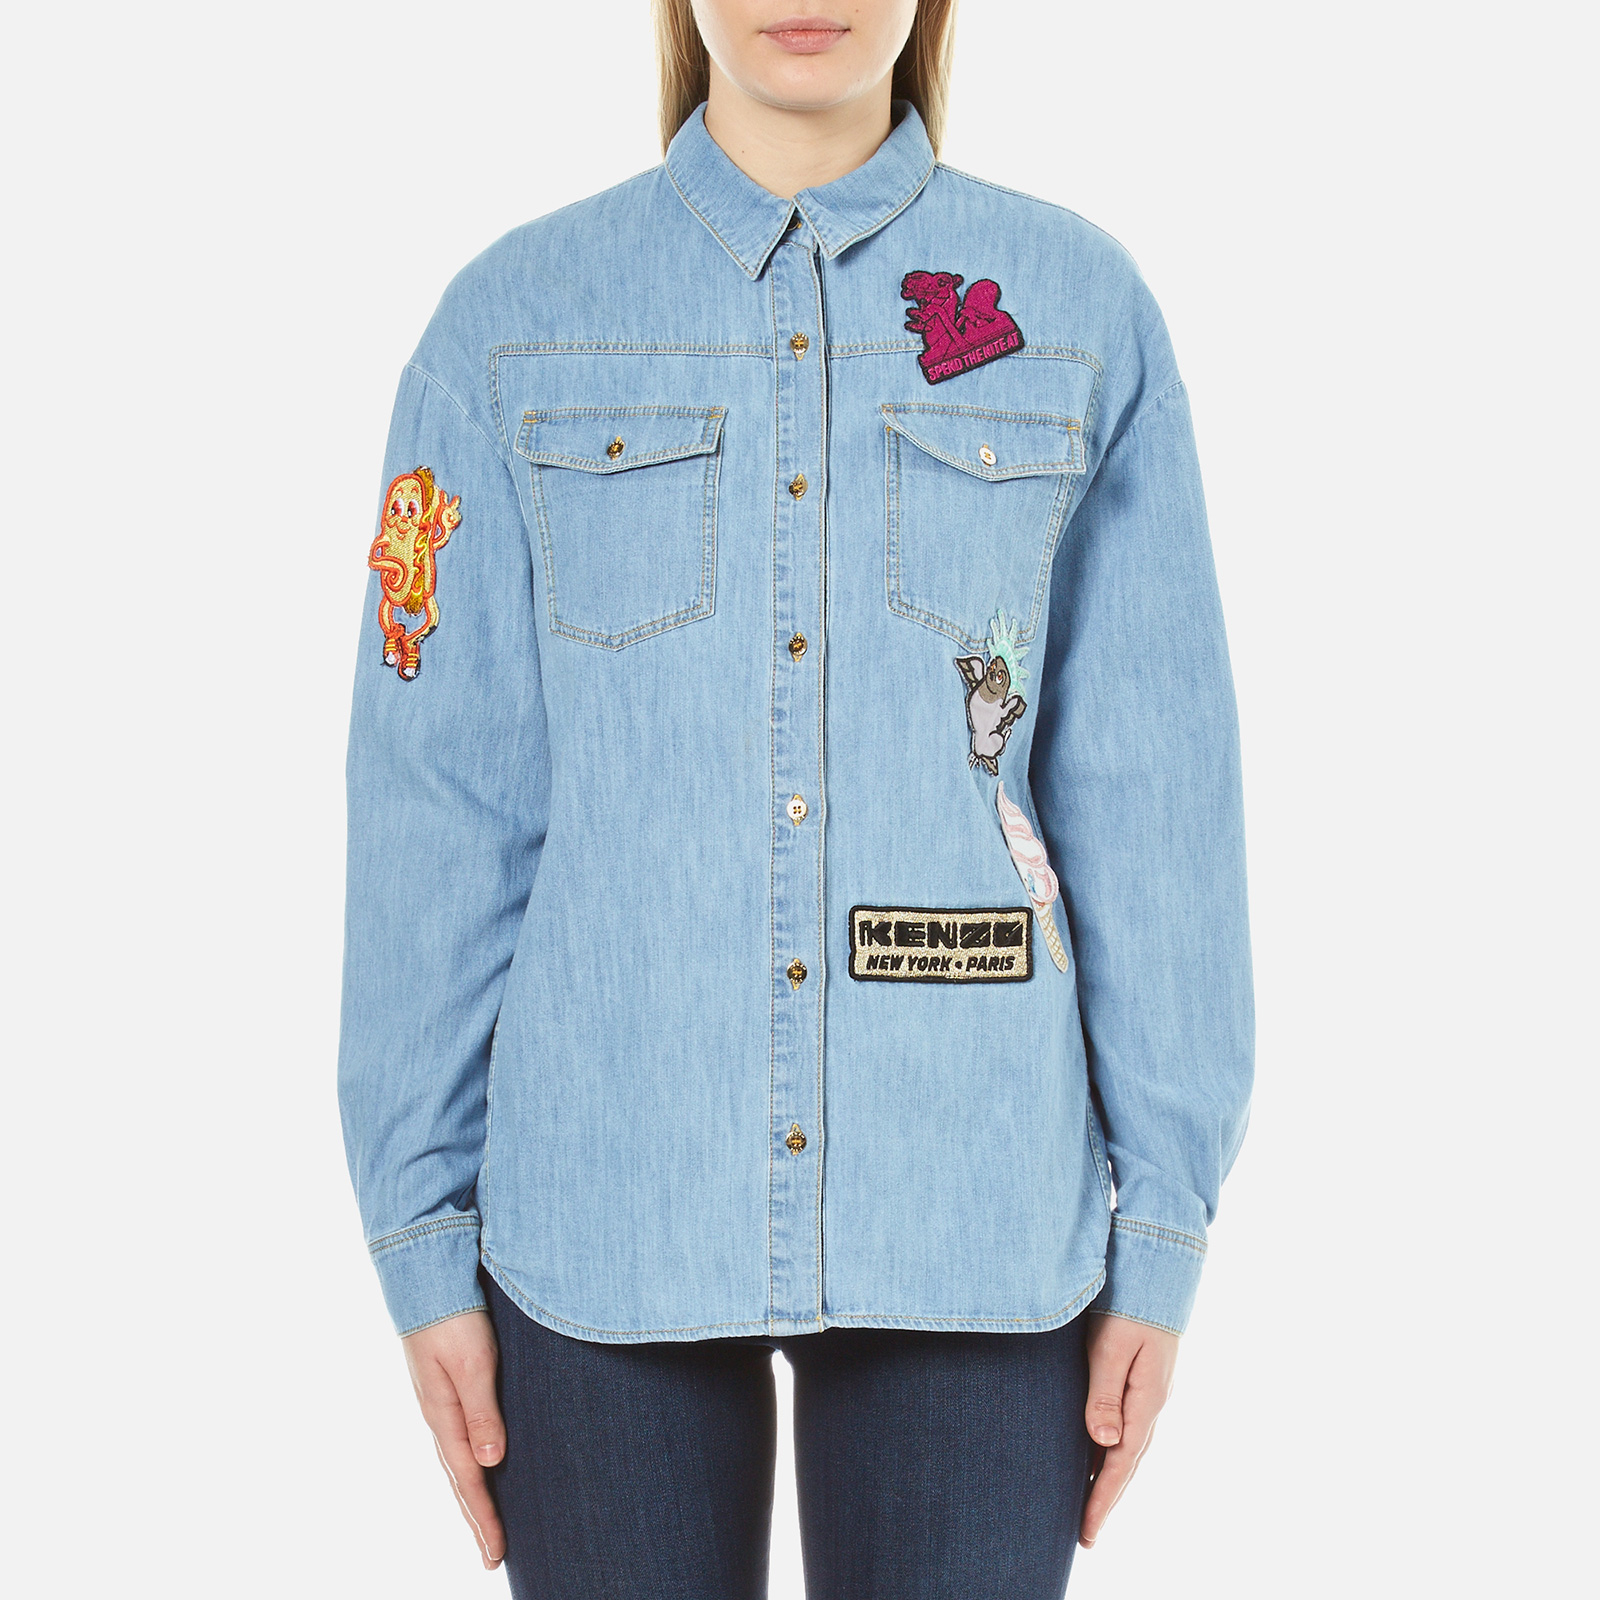 6474ce02 KENZO Women's Light Washed Blue Denim Patchwork Shirt - Blue - Free UK  Delivery over £50